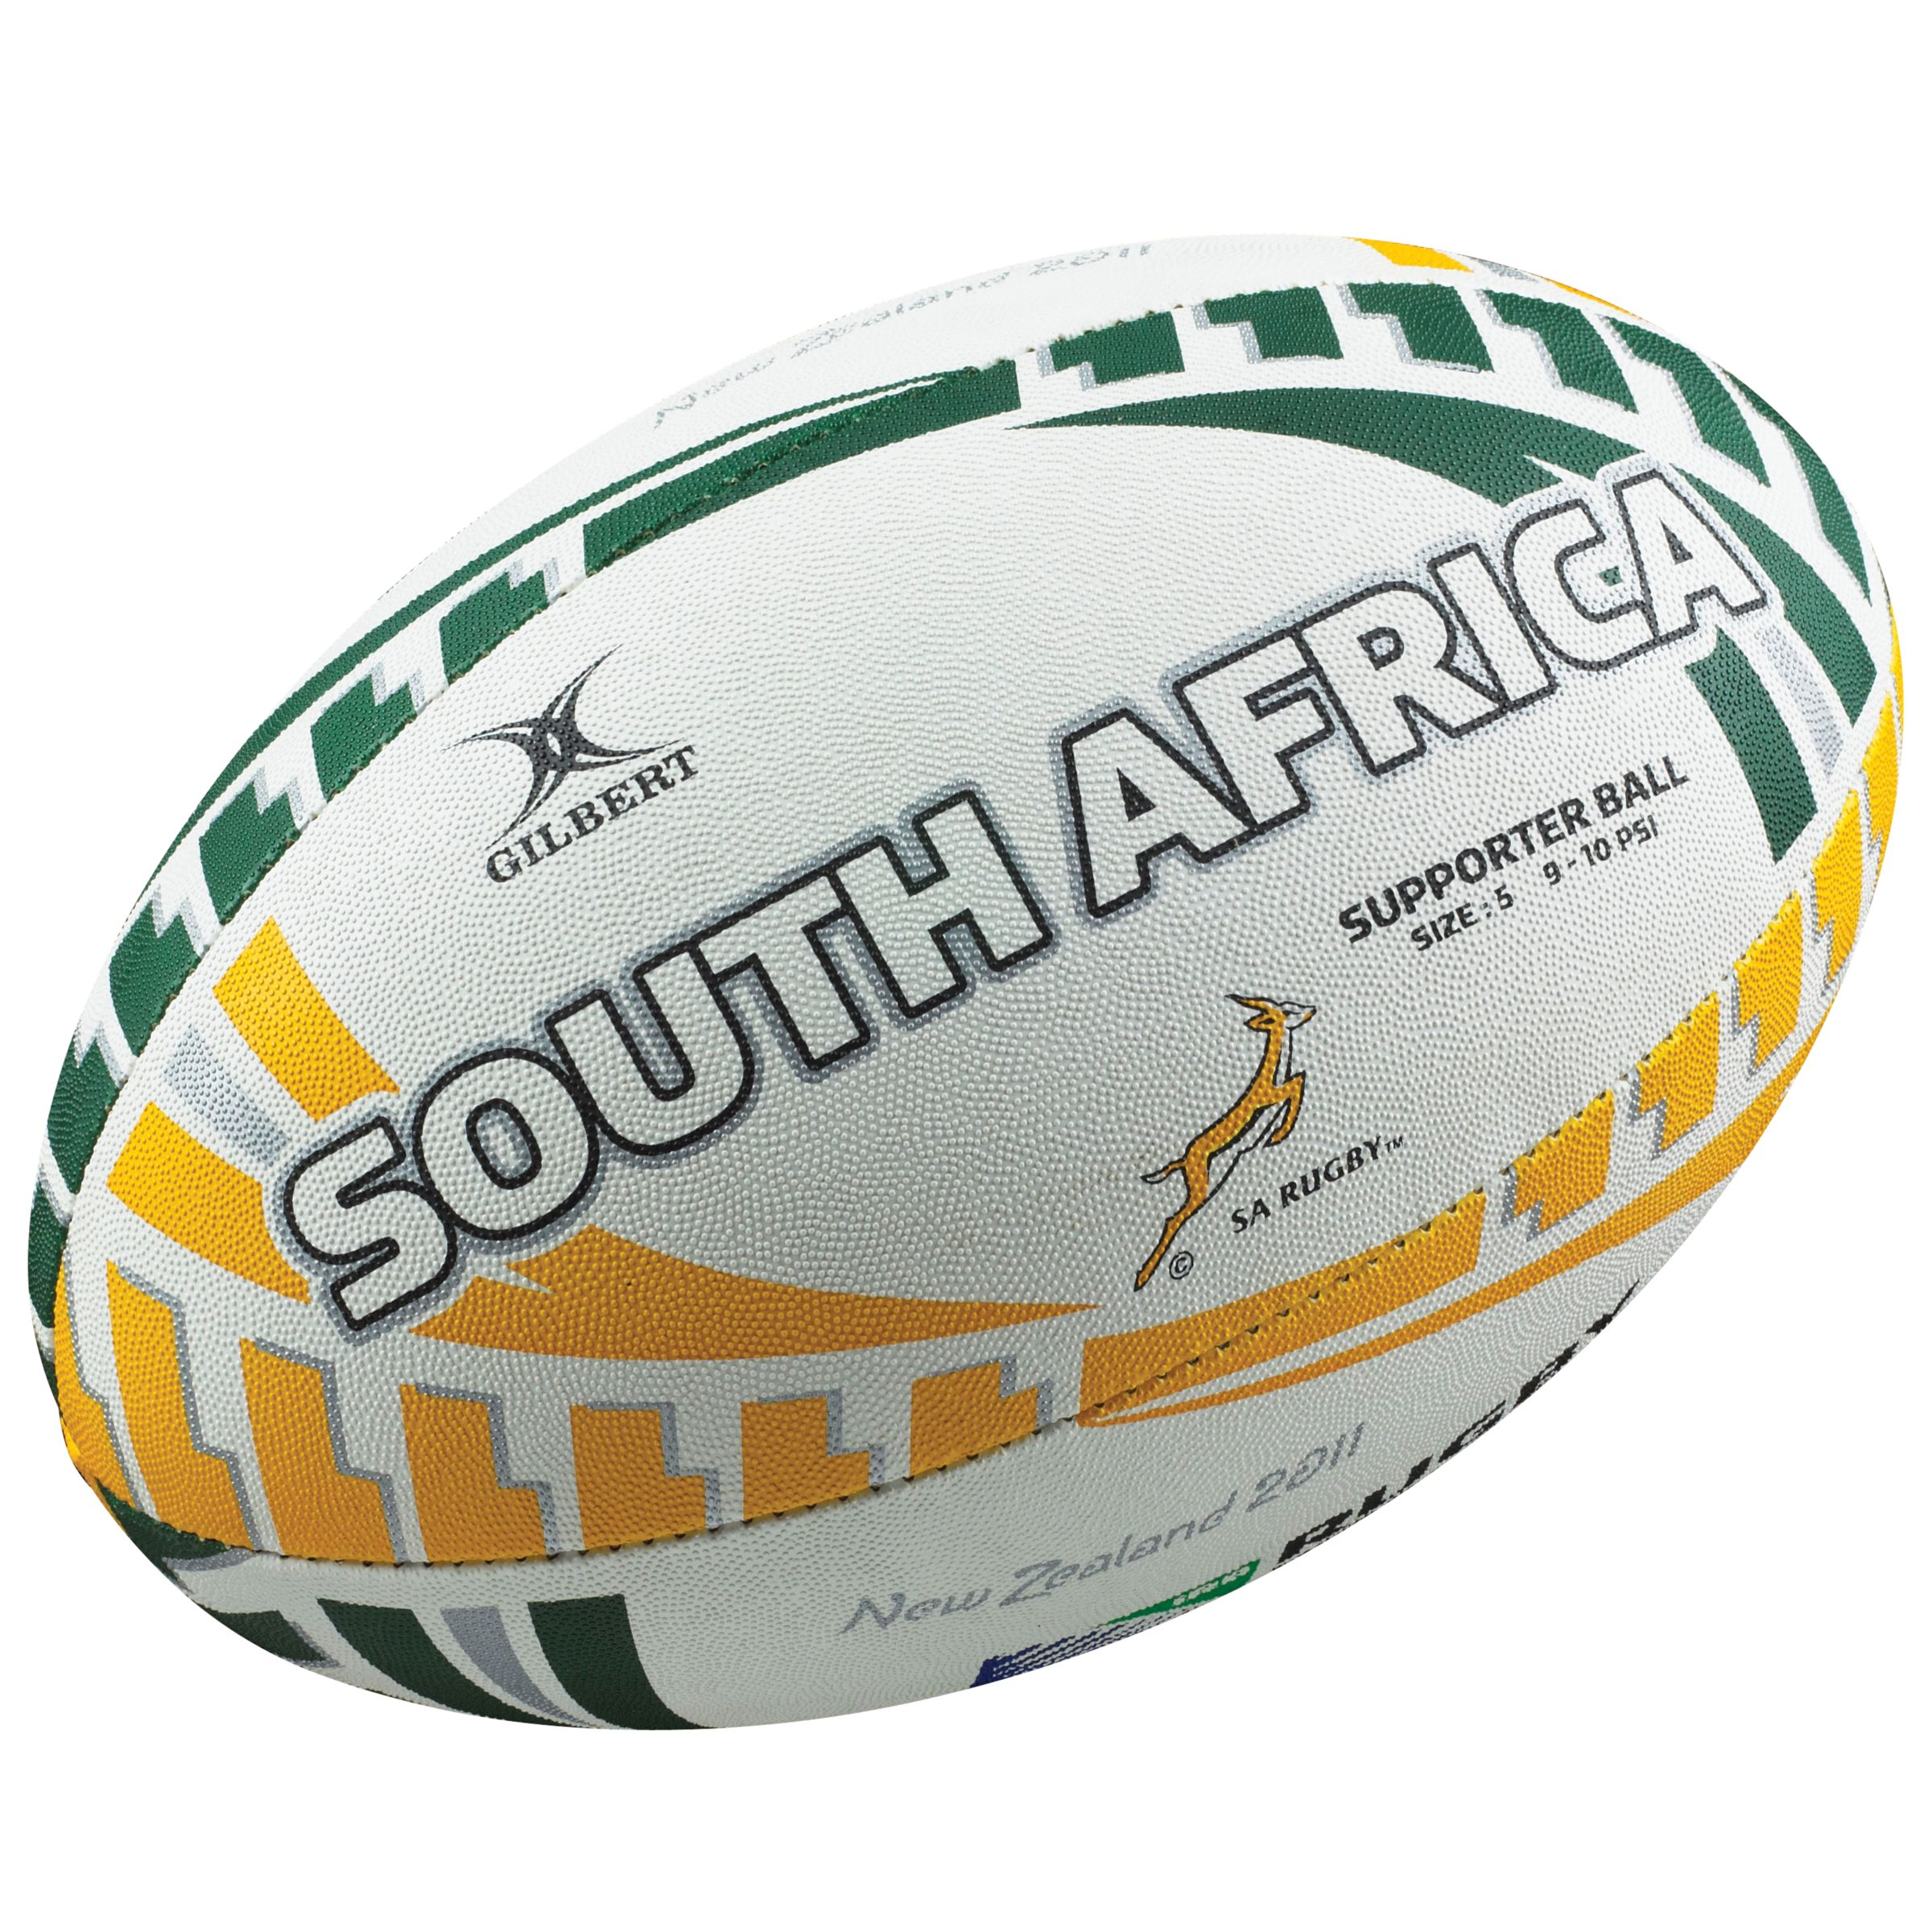 Gilbert Rugby World Cup South Africa Supporters Ball, Size 5